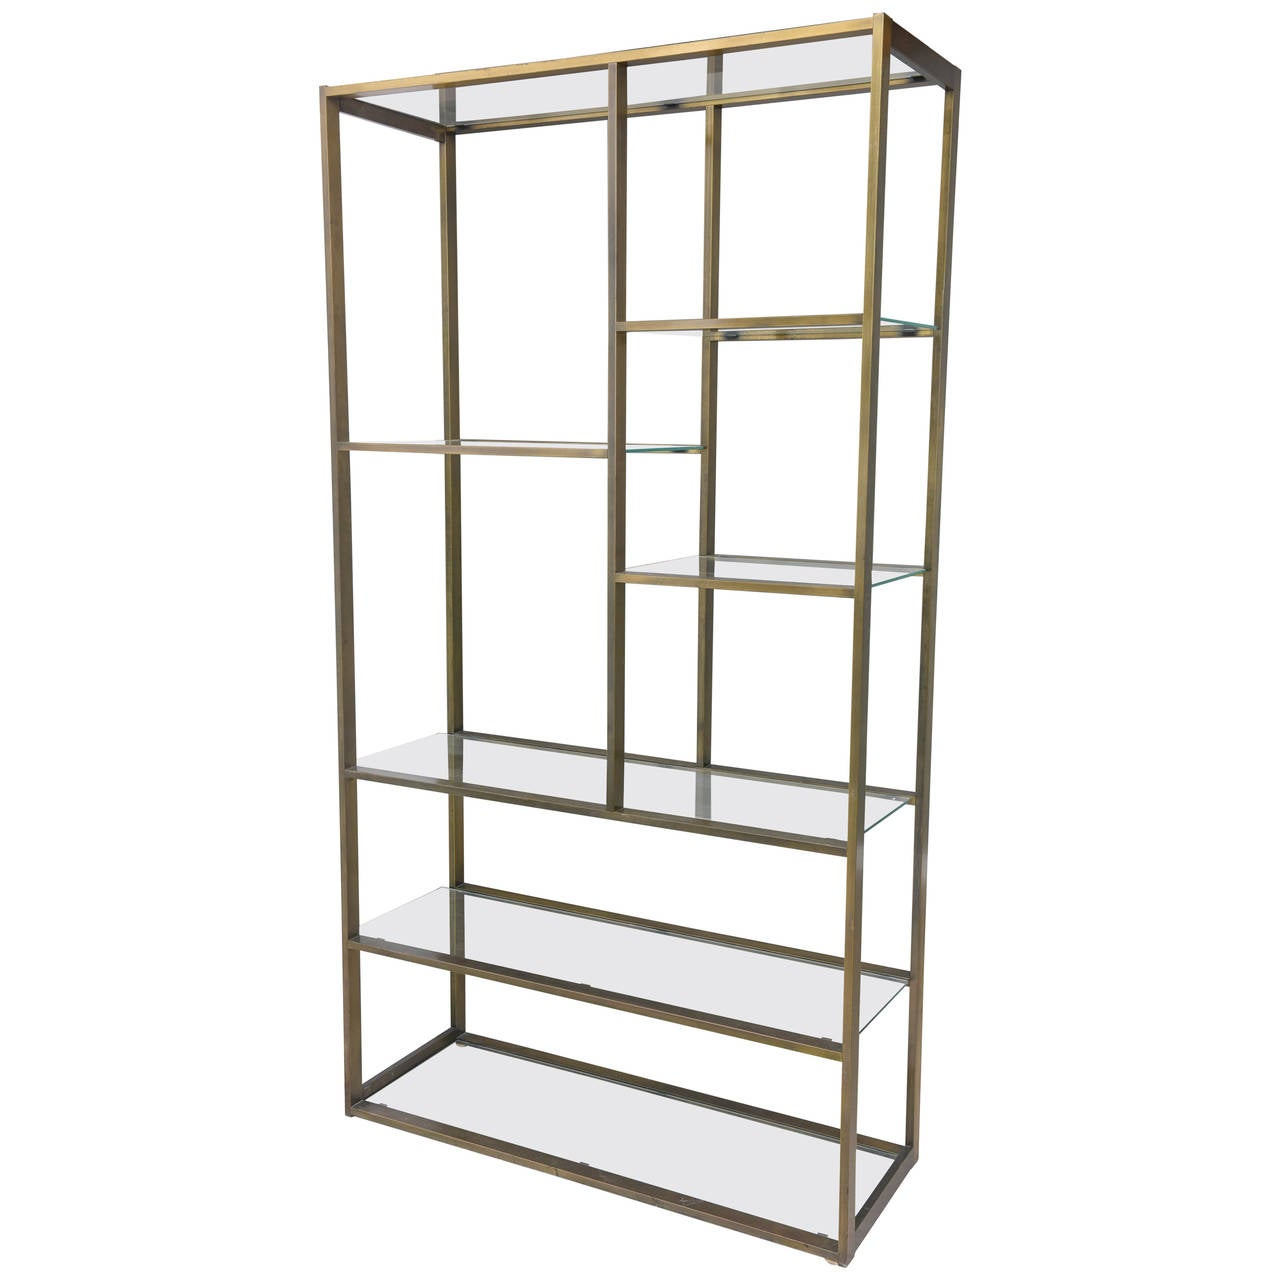 bronze milo baughman etagere with glass shelves at 1stdibs. Black Bedroom Furniture Sets. Home Design Ideas